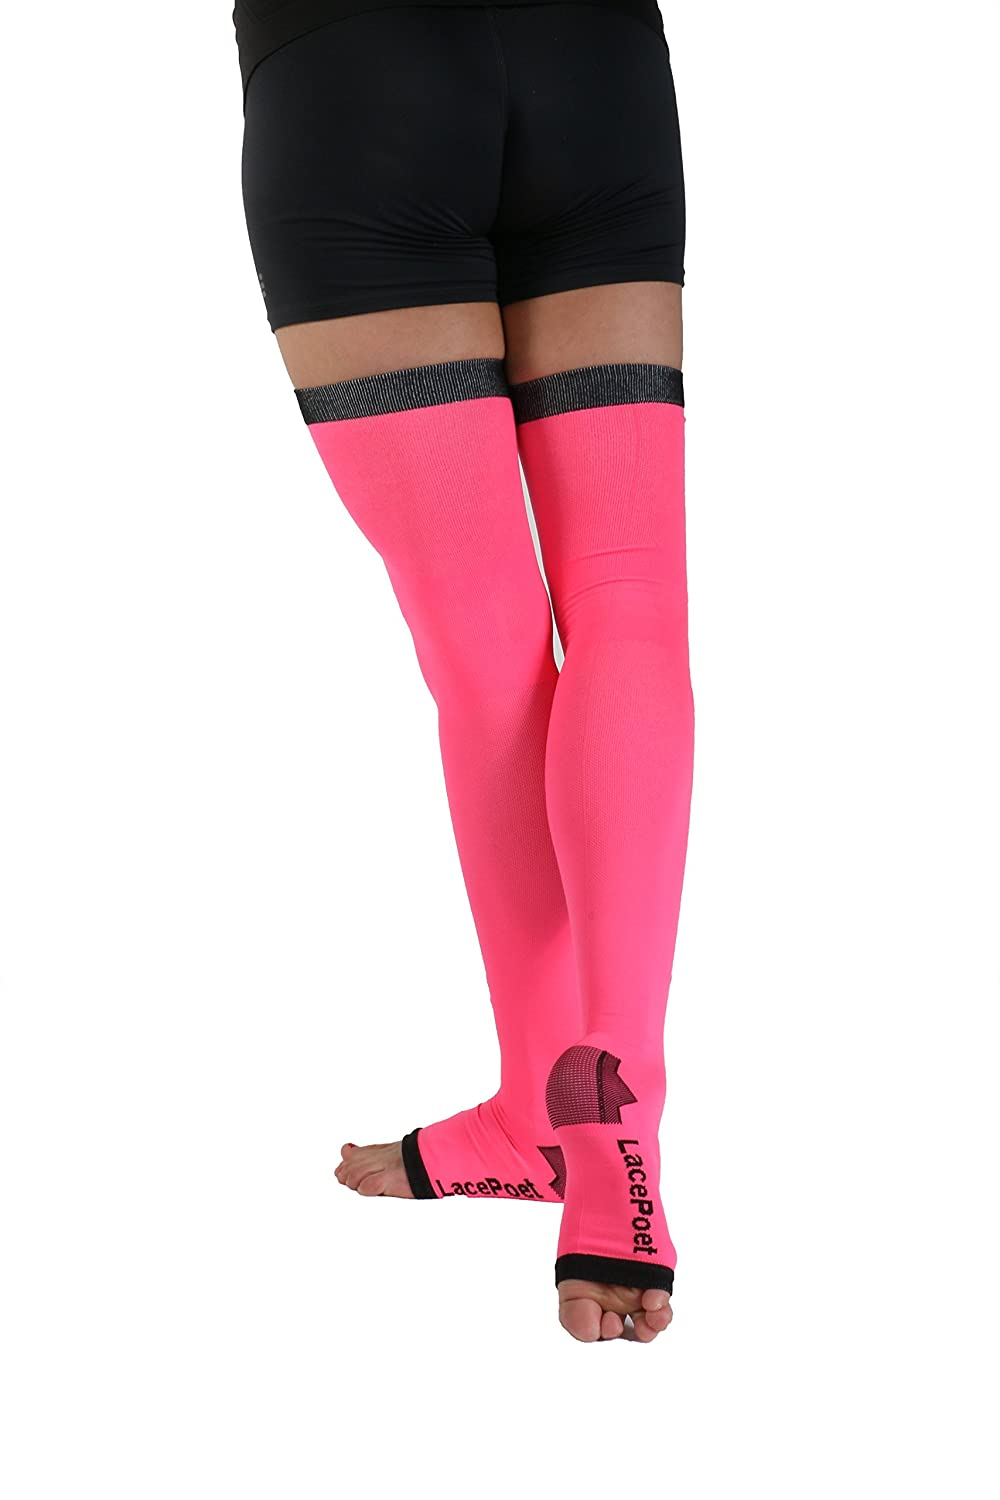 Lace Poet Yoga/Sleep Thigh-High Compression Toeless Socks